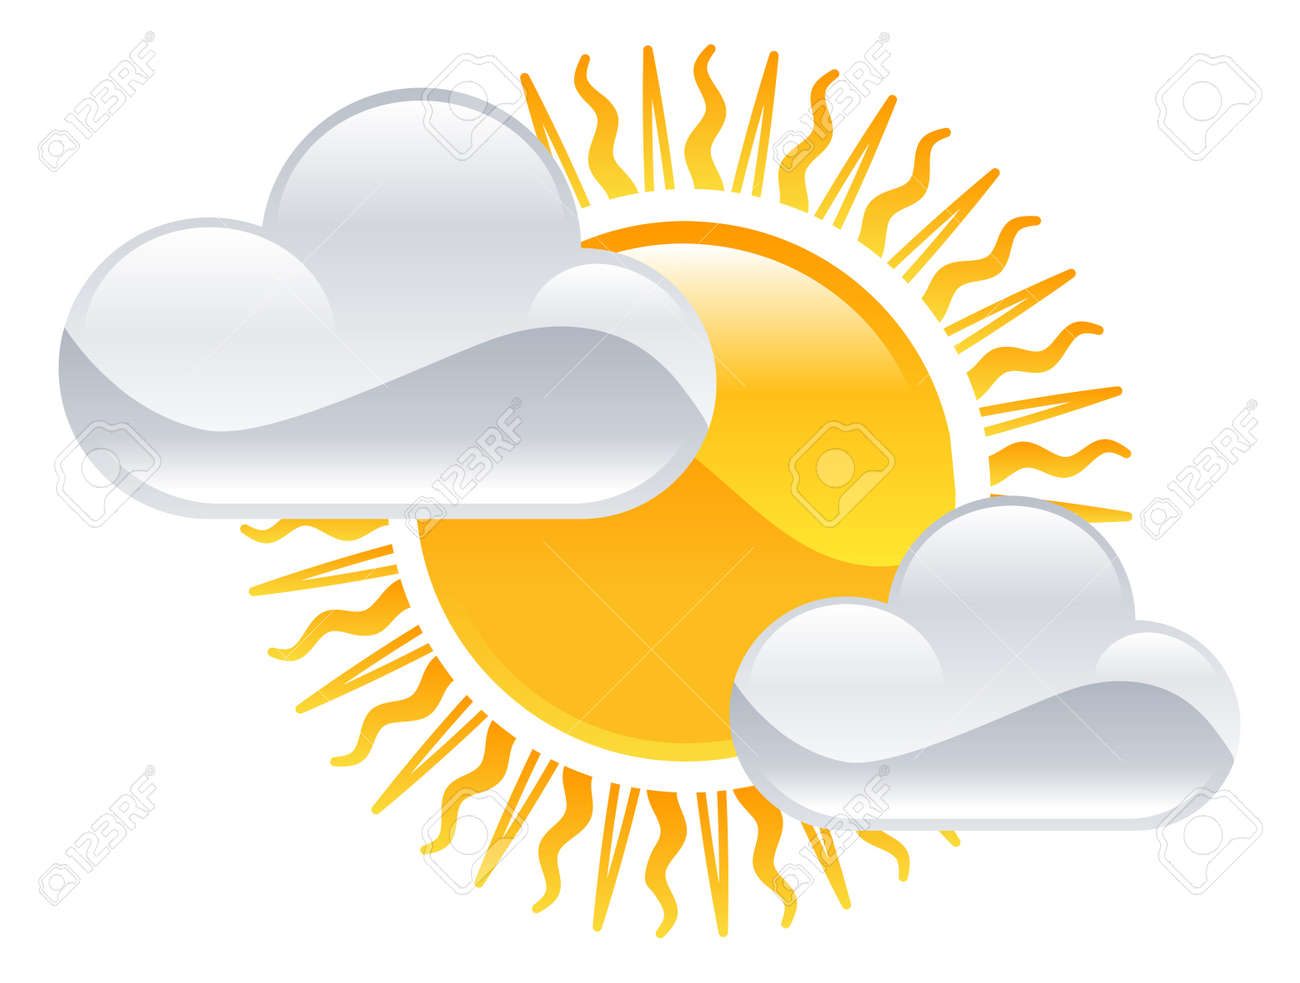 hight resolution of vector weather icon clipart sun and clouds illustration